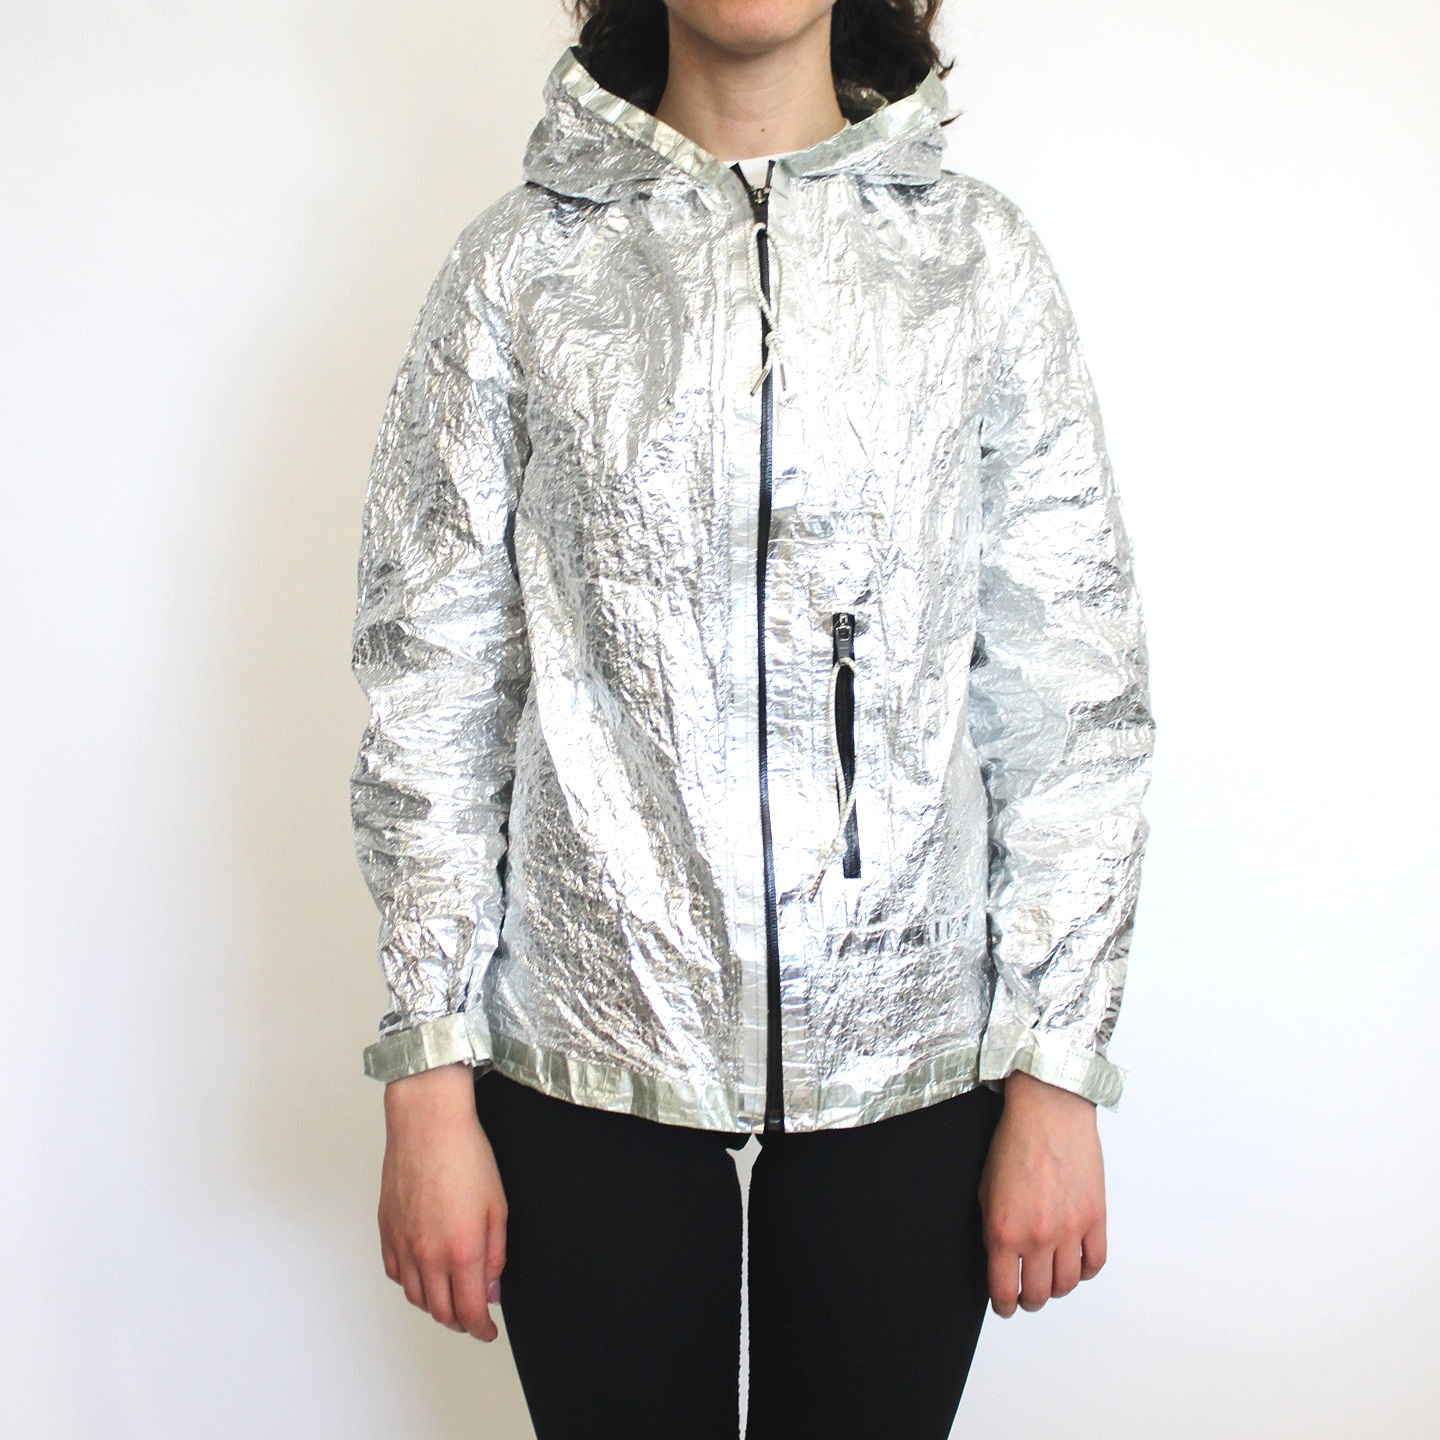 Emergency Jacket (E-Jacket) - FFD's Emergency Jacket is made from super lightweight non-woven dyneema fabric, bonded to mylar. The result is an exceptionally thin, durable garment that has excellent thermal properties, and can protect you against rain, wind, and exposure.Total weight is 4.75 Ounces! All seams are taped, which means they are inherently waterproof and have minimal added bulk. The entire jacket folds up smaller than a sandwich, and is appropriate for camping, biking, or urban adventures.The unique dyneema-mylar fabric is non-stretch, with a greenish outer shell and a pure silver mylar inner side; the jacket is reversible.